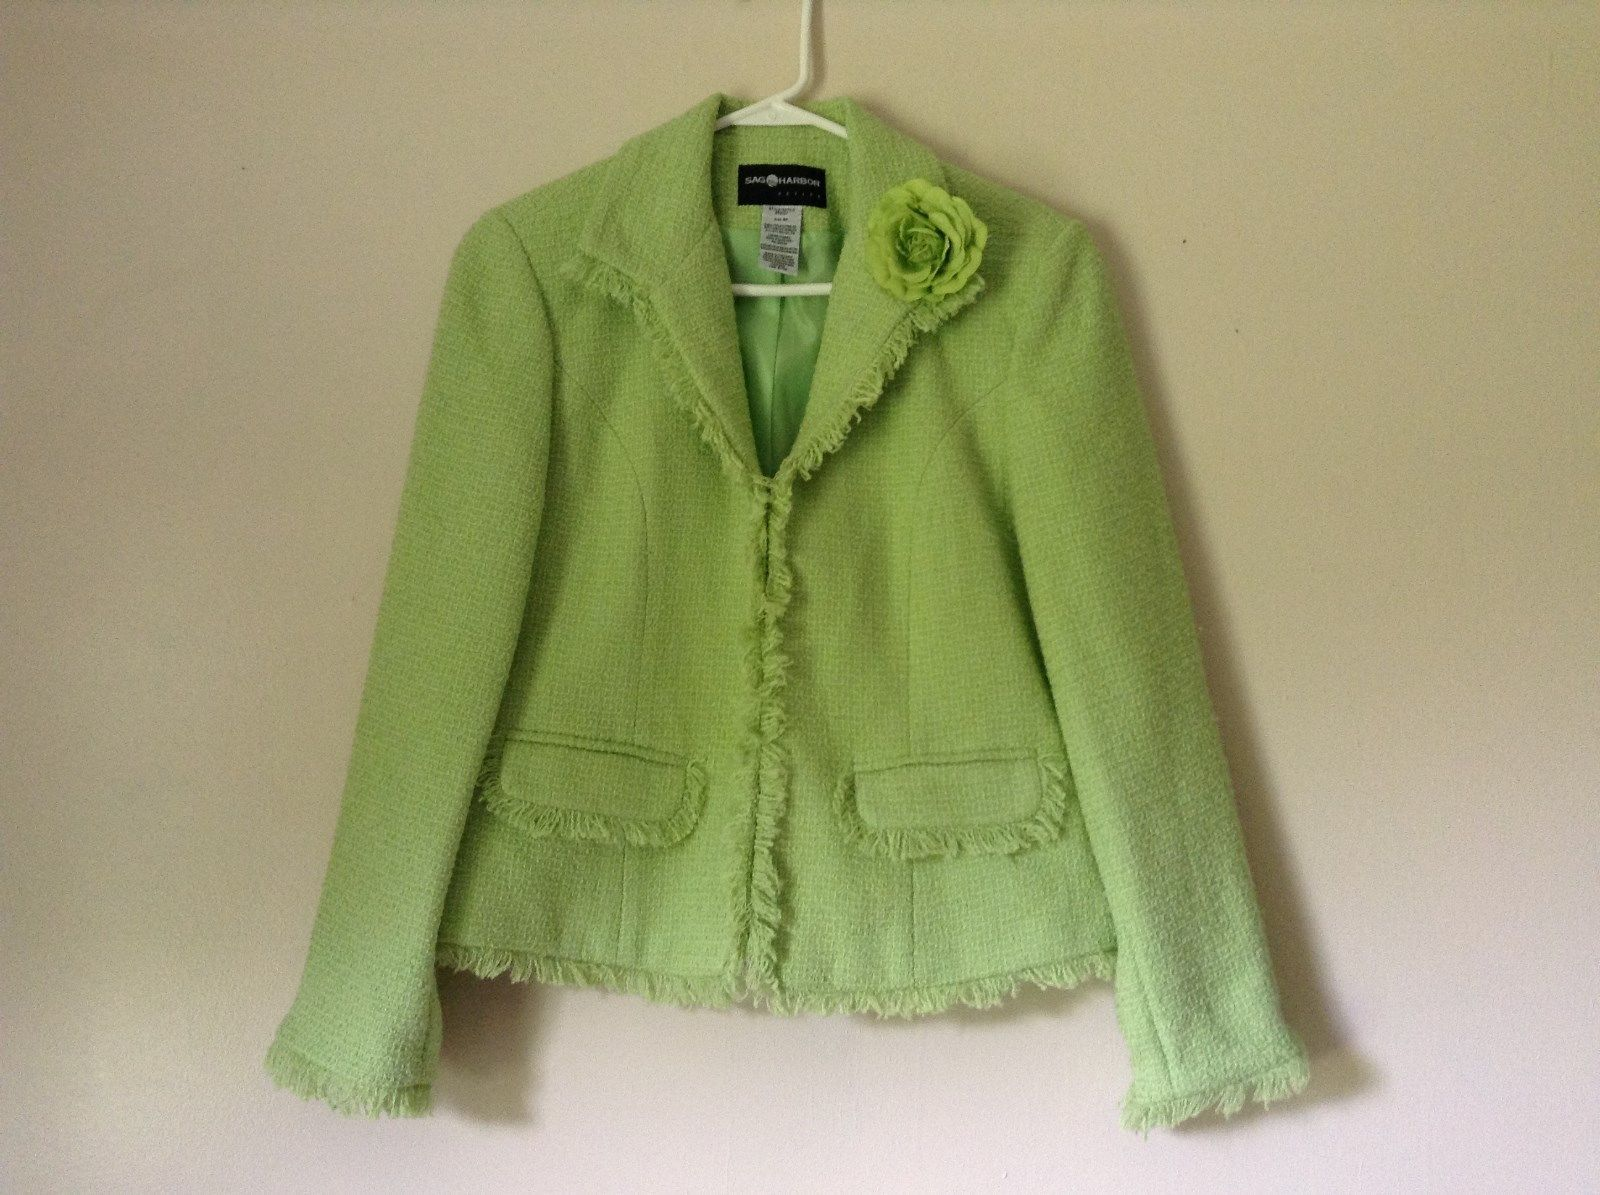 Bright Green Light Sleeve Sag Harbor Blazer Shoulder Pads Petite Size 6P